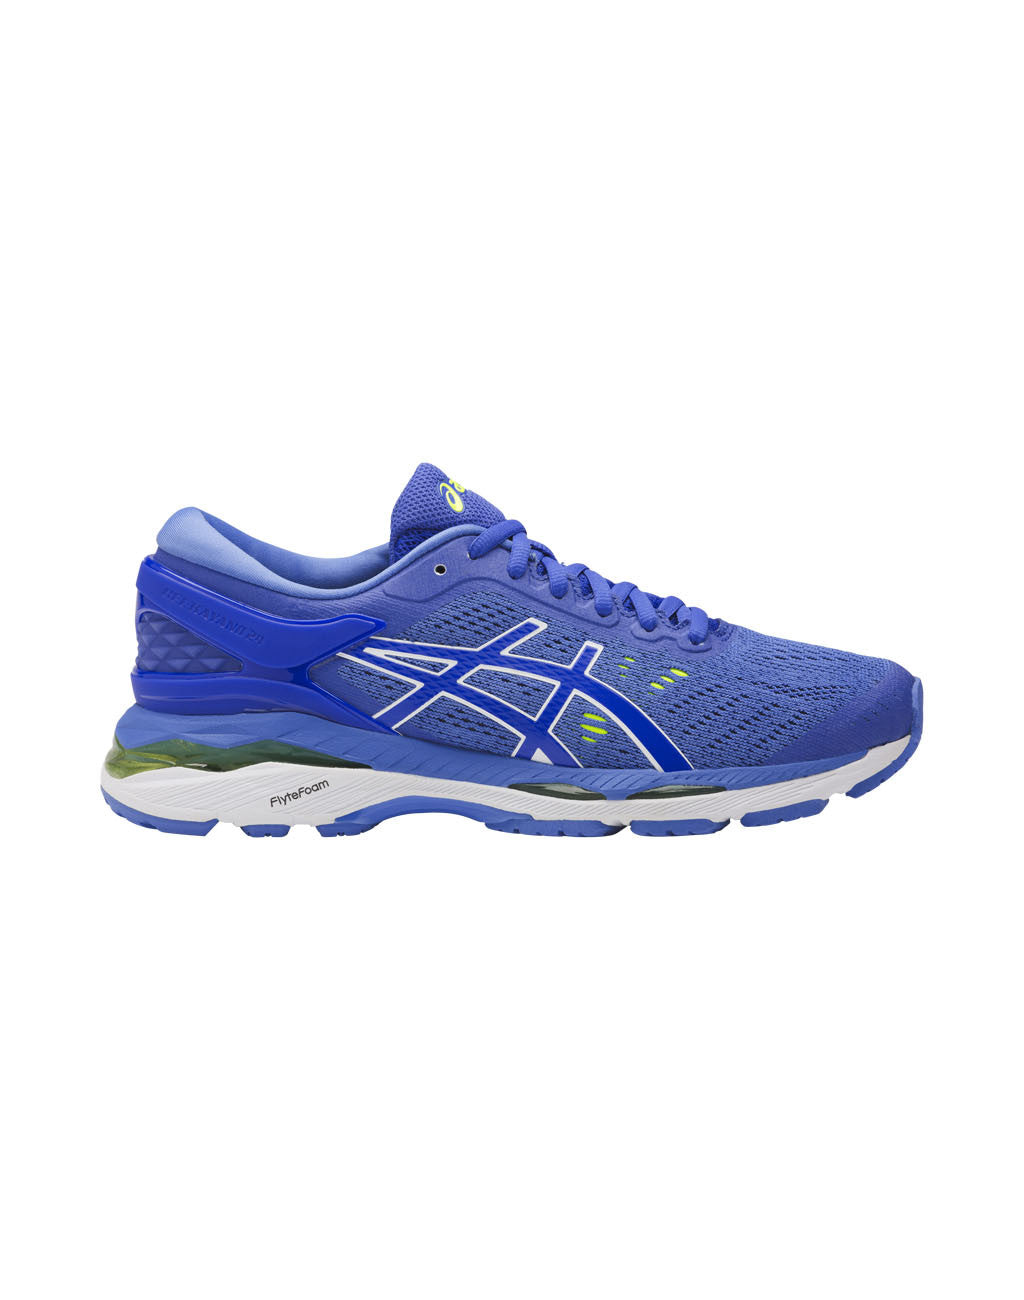 ASICS GEL-Kayano 24 (Narrow - 2A) (Women's)6_master_image